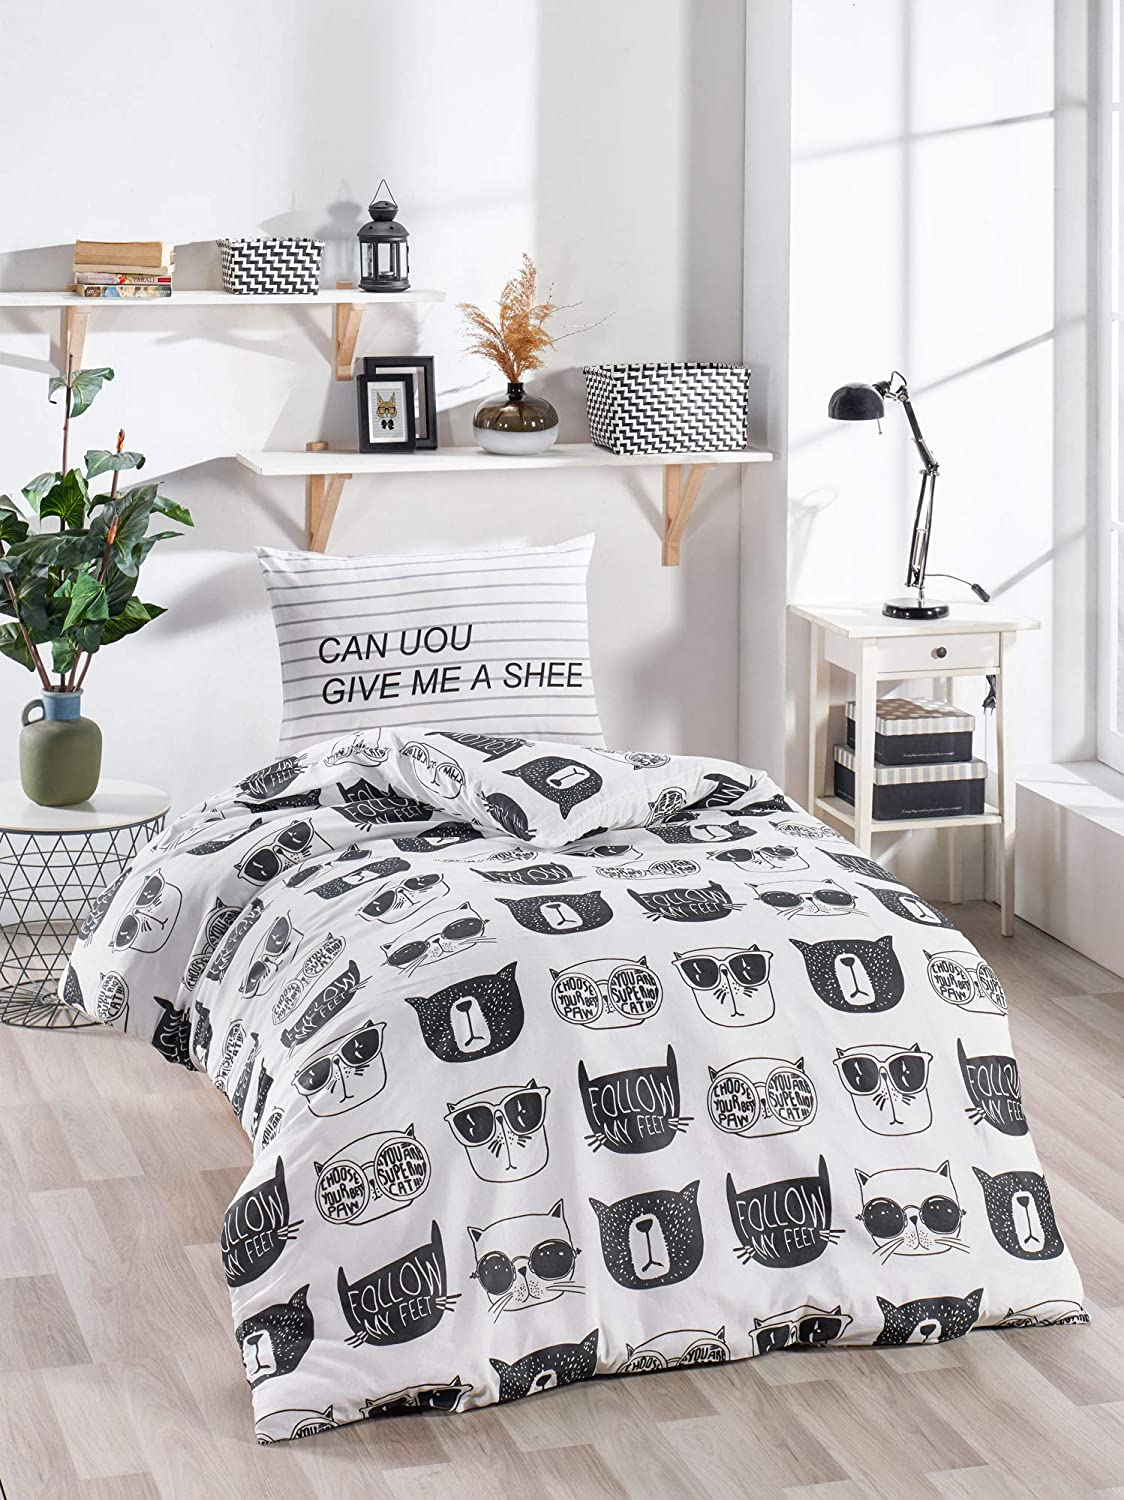 Ozinci Cats Bedding Set Follow My Feet Themed Single Twin Size 1 Duvet Cover 1 Pillow Case Girls Boys Bed Set Comforter Included 3 Pcs Home Kitchen